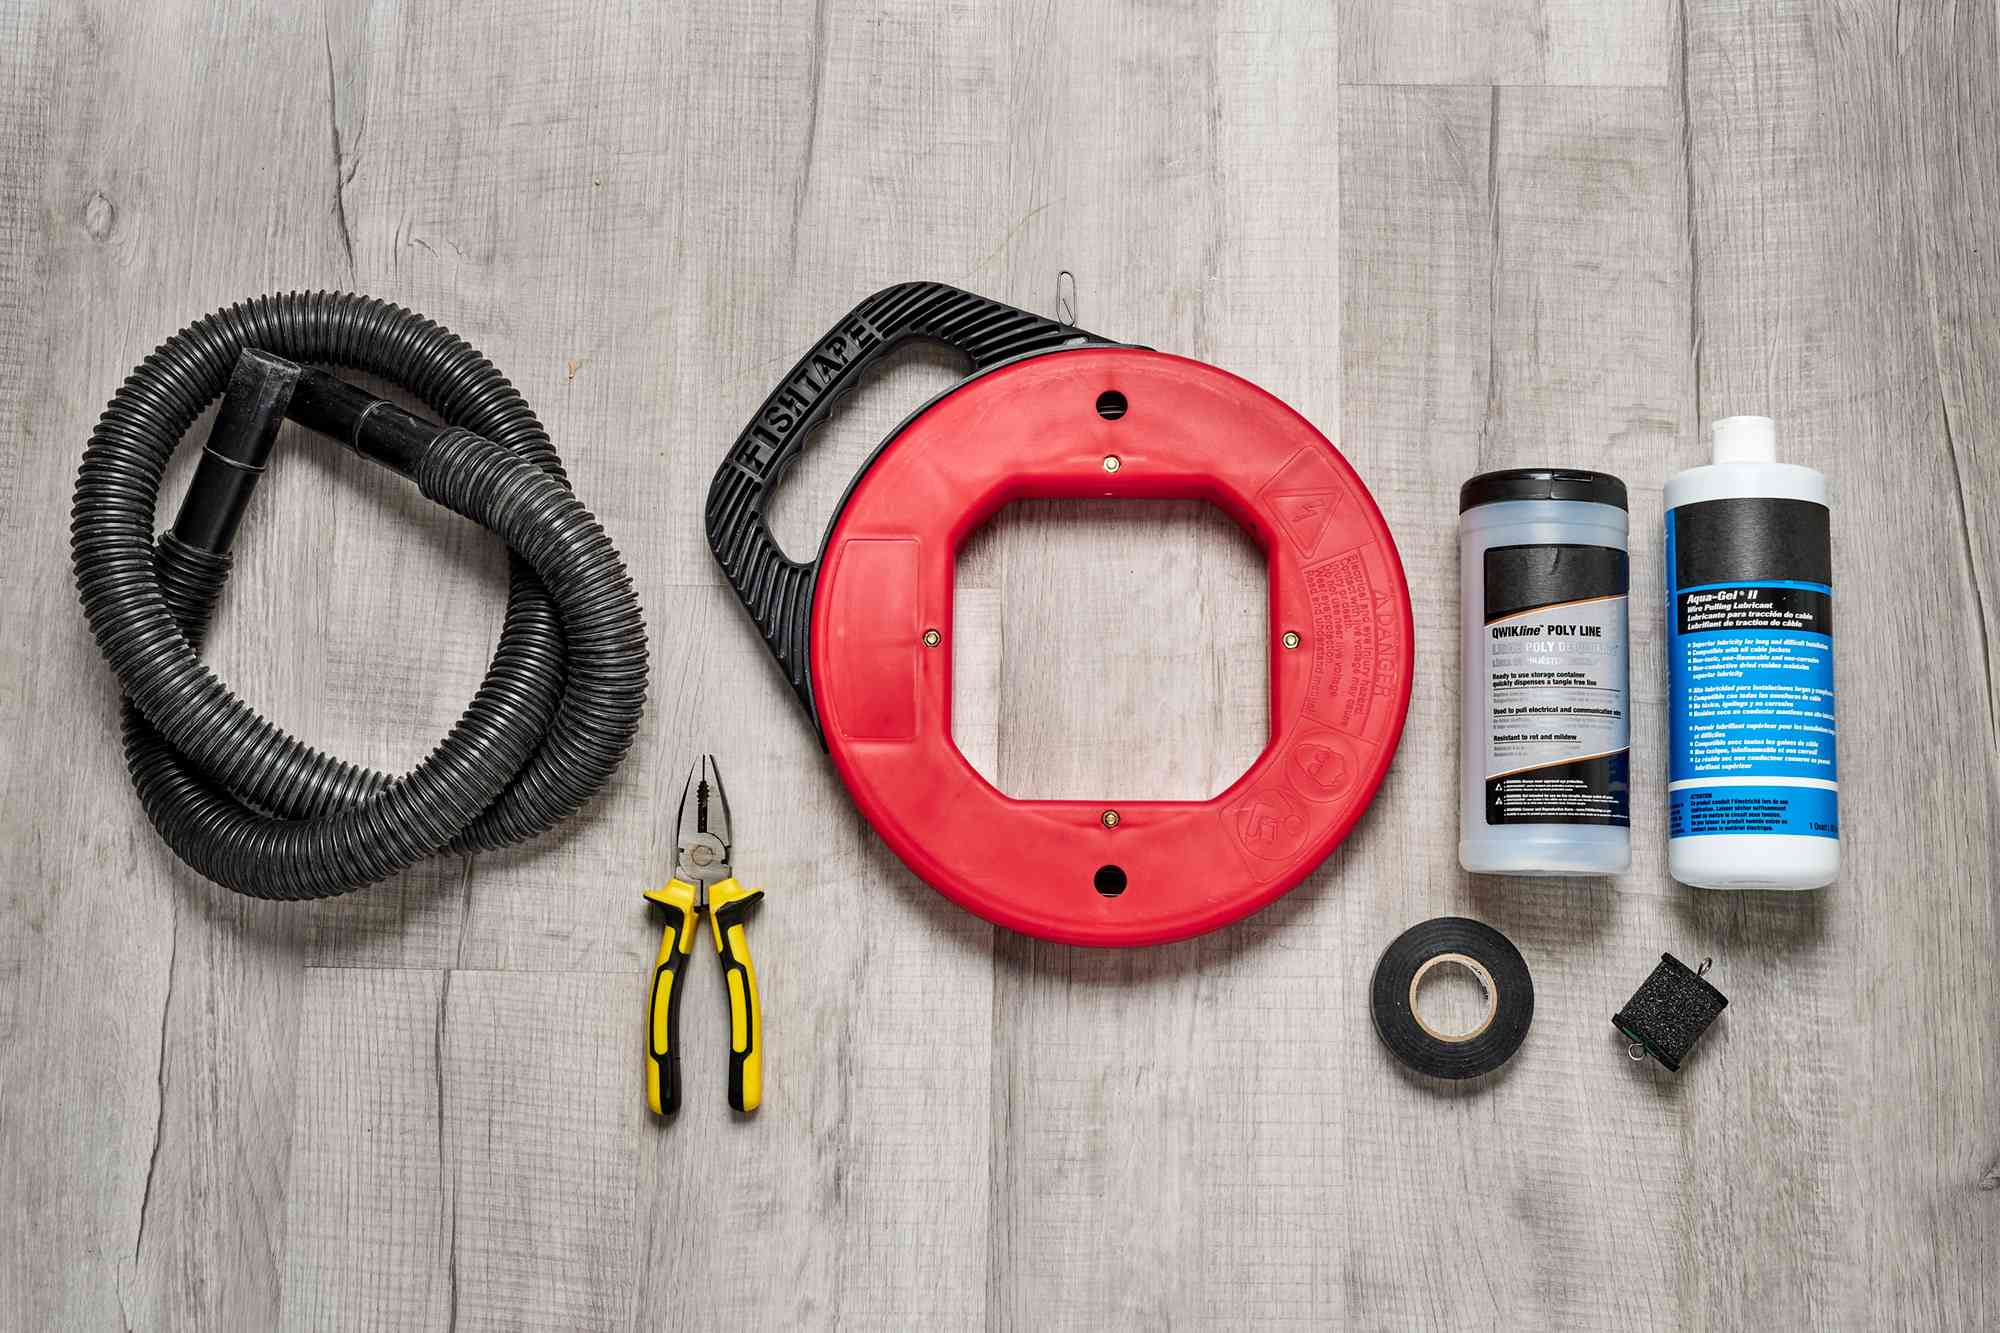 Materials and tools to pull wire through conduit